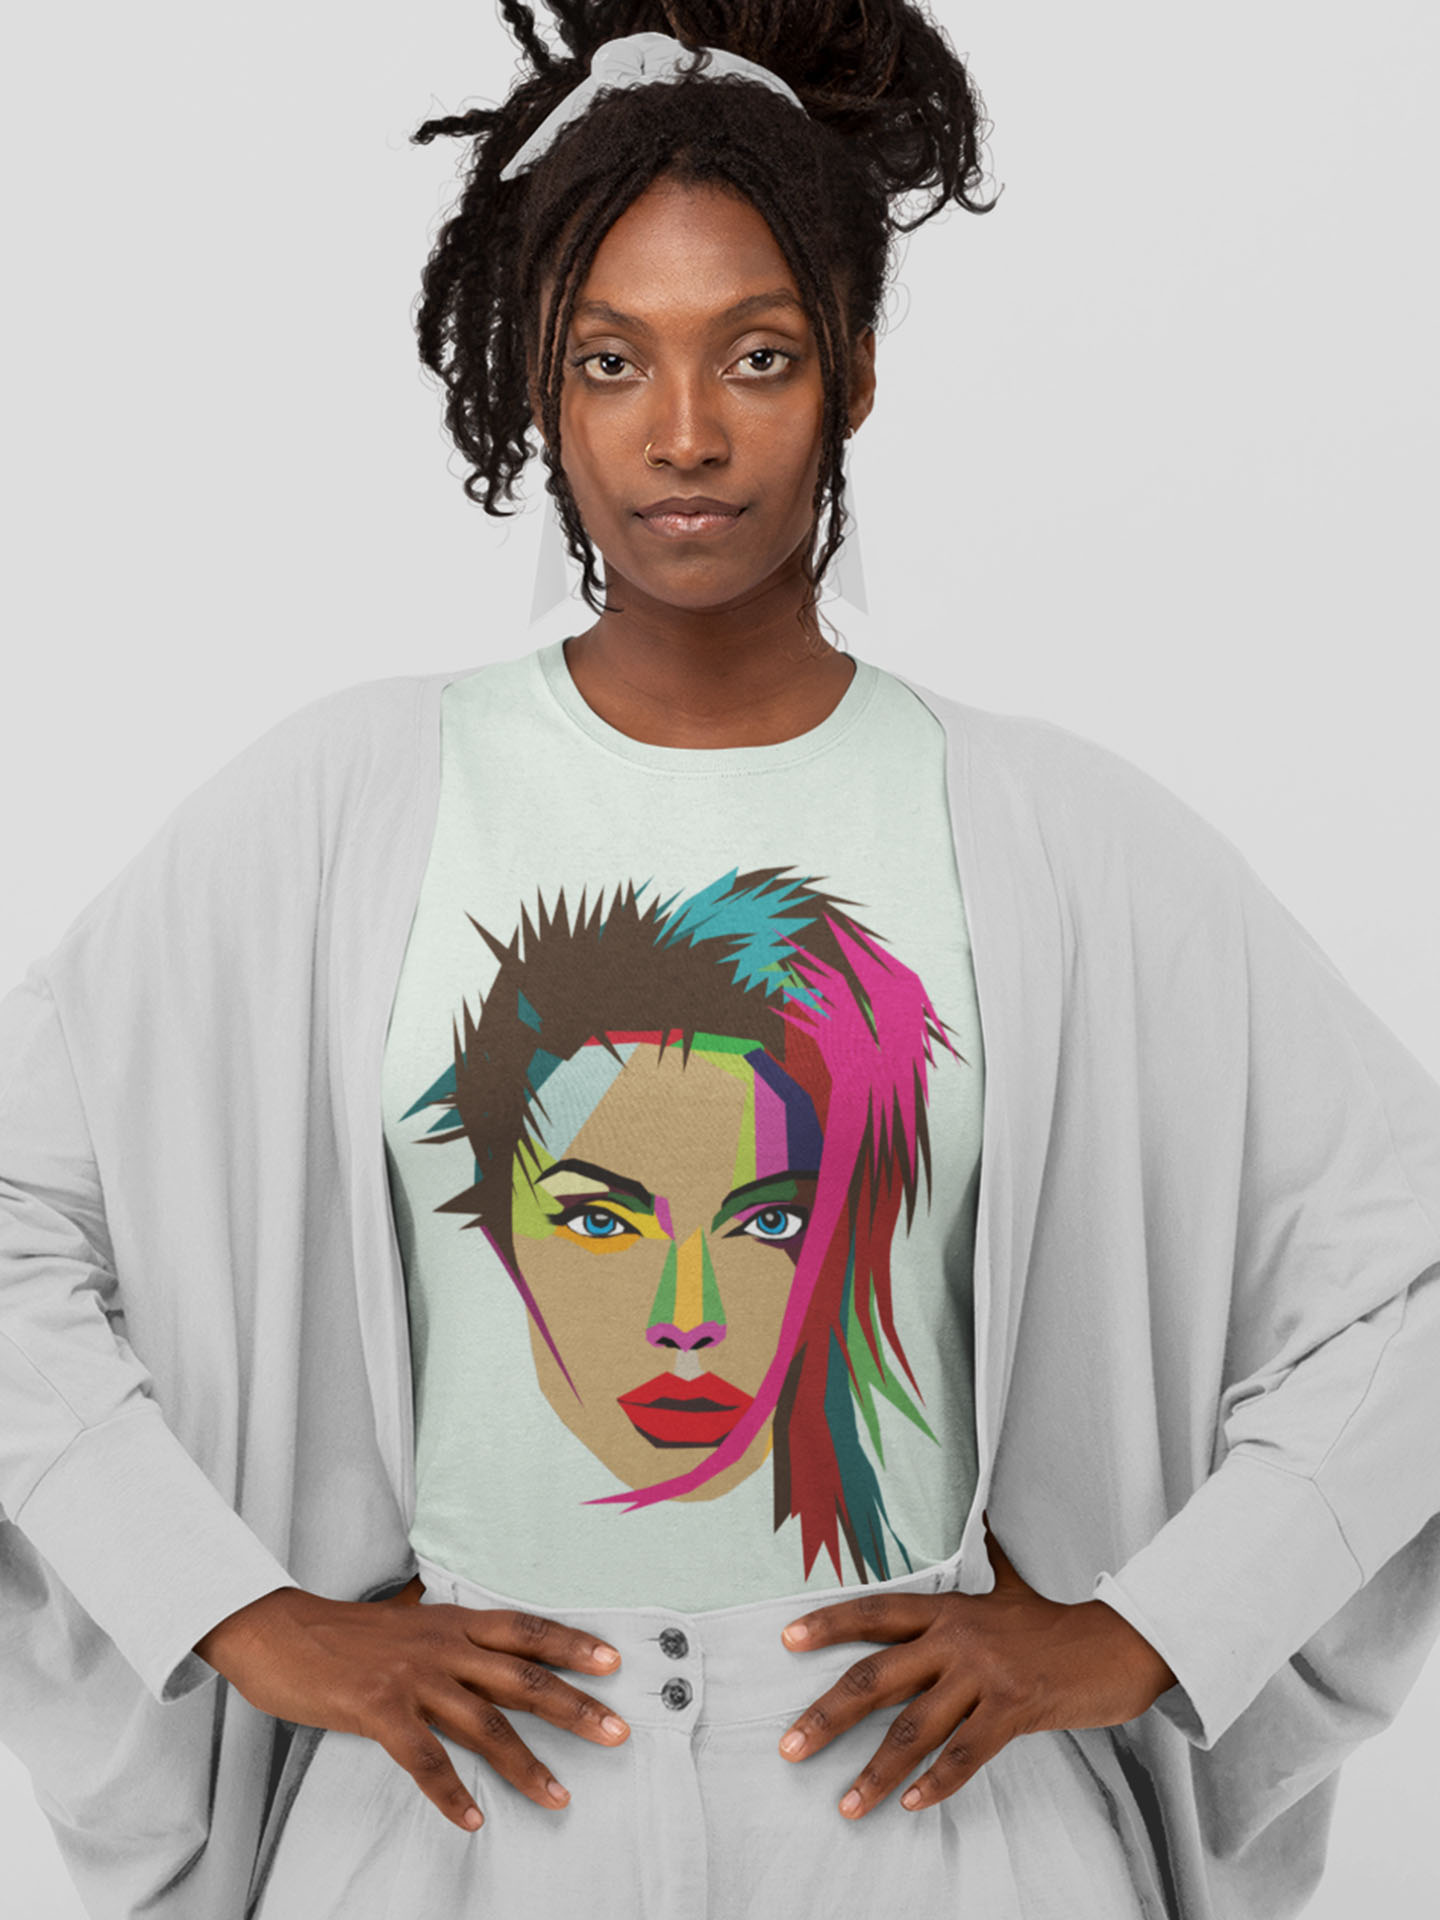 Spredshirt-Prints-Trailfire_0009_monochromatic-mockup-featuring-a-woman-wearing-a-customizable-t-shirt-at-a-studio-32797